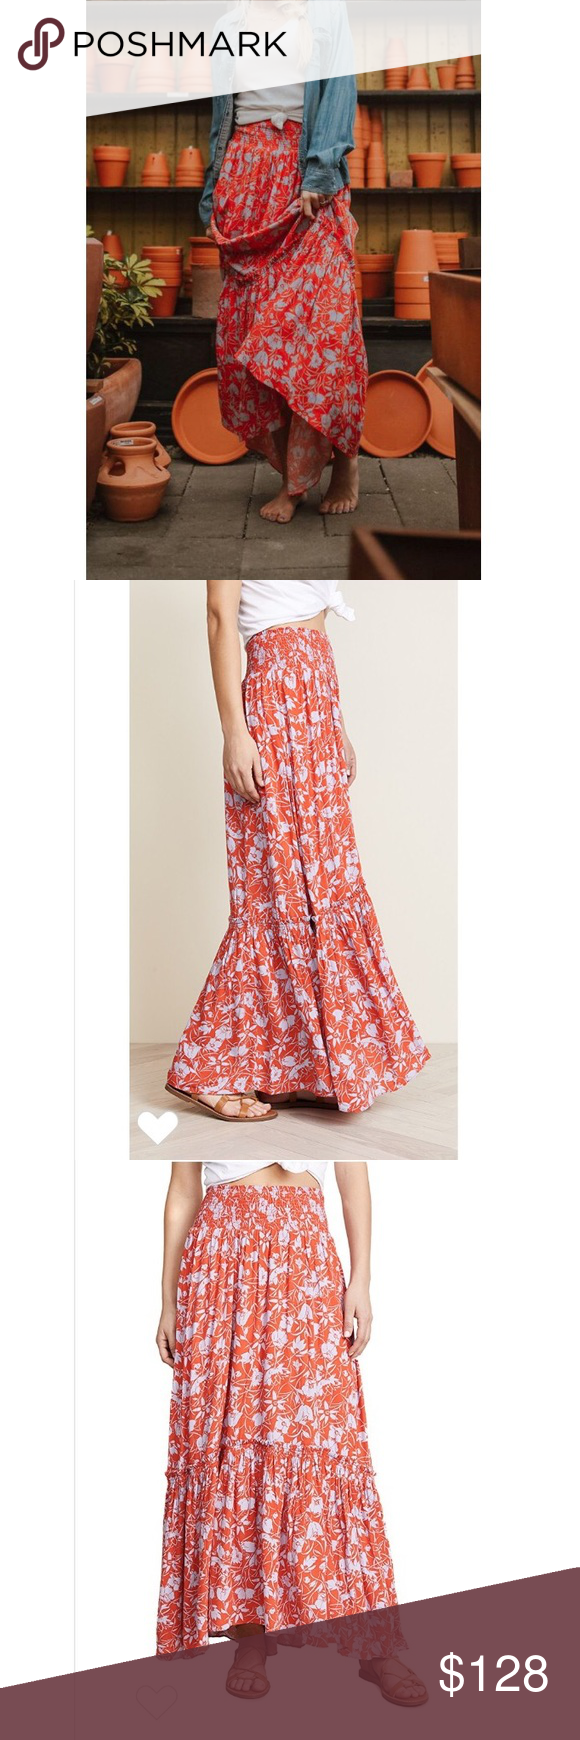 fd5923d325 Free People Way Of The Wind Skirt Breezy maxi skirt featuring a festive  floral print,